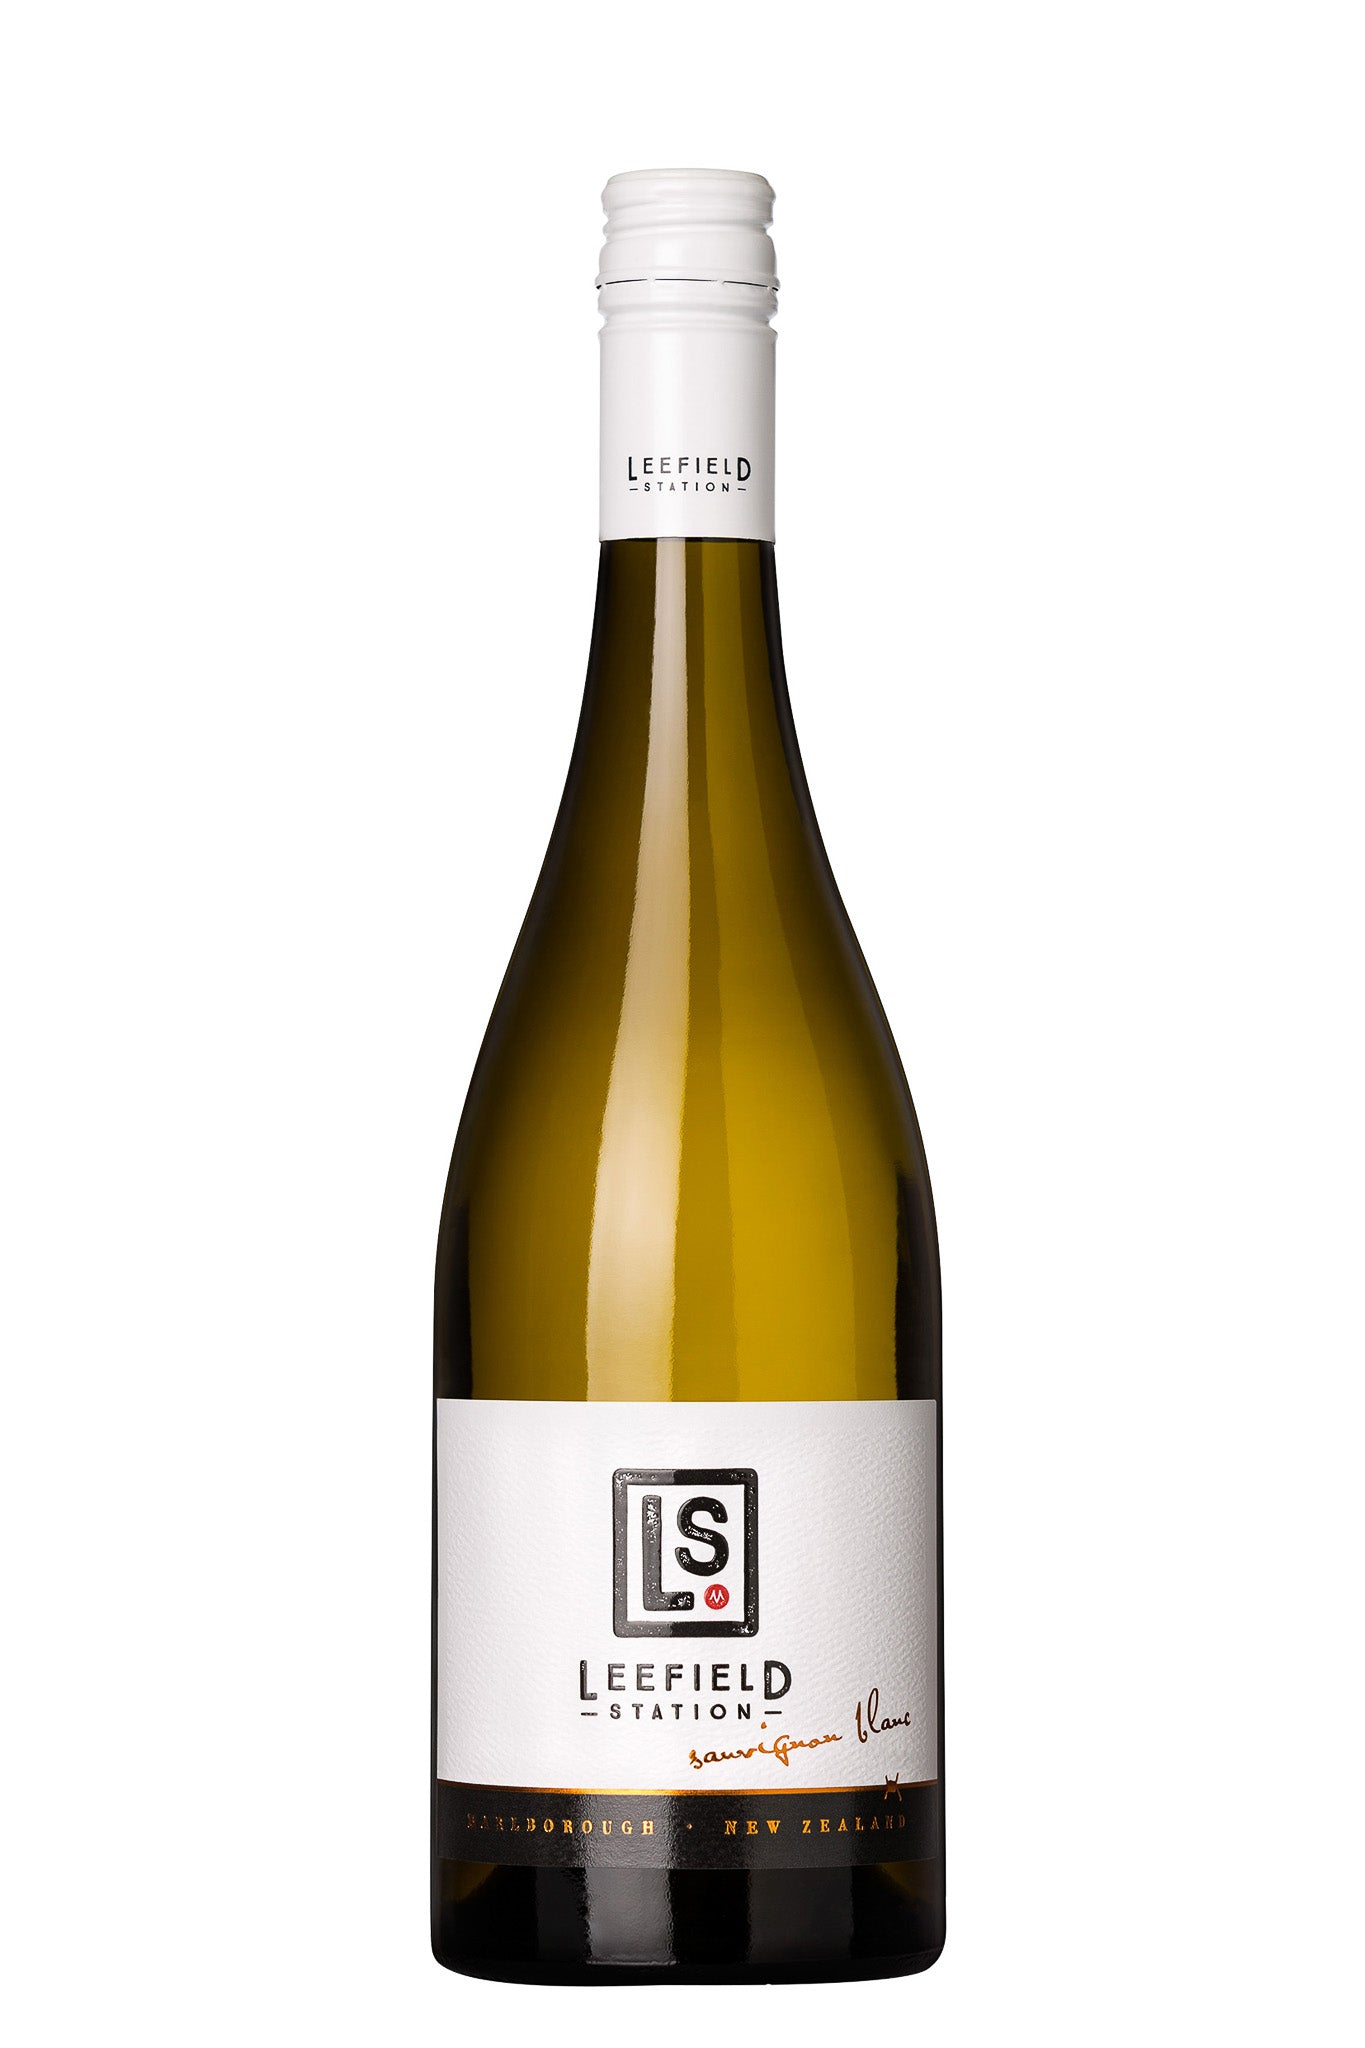 Marisco Leefield Station Sauvignon Blanc 2015 • Weisswein • Neuseeland • Marlborough • 750 ml